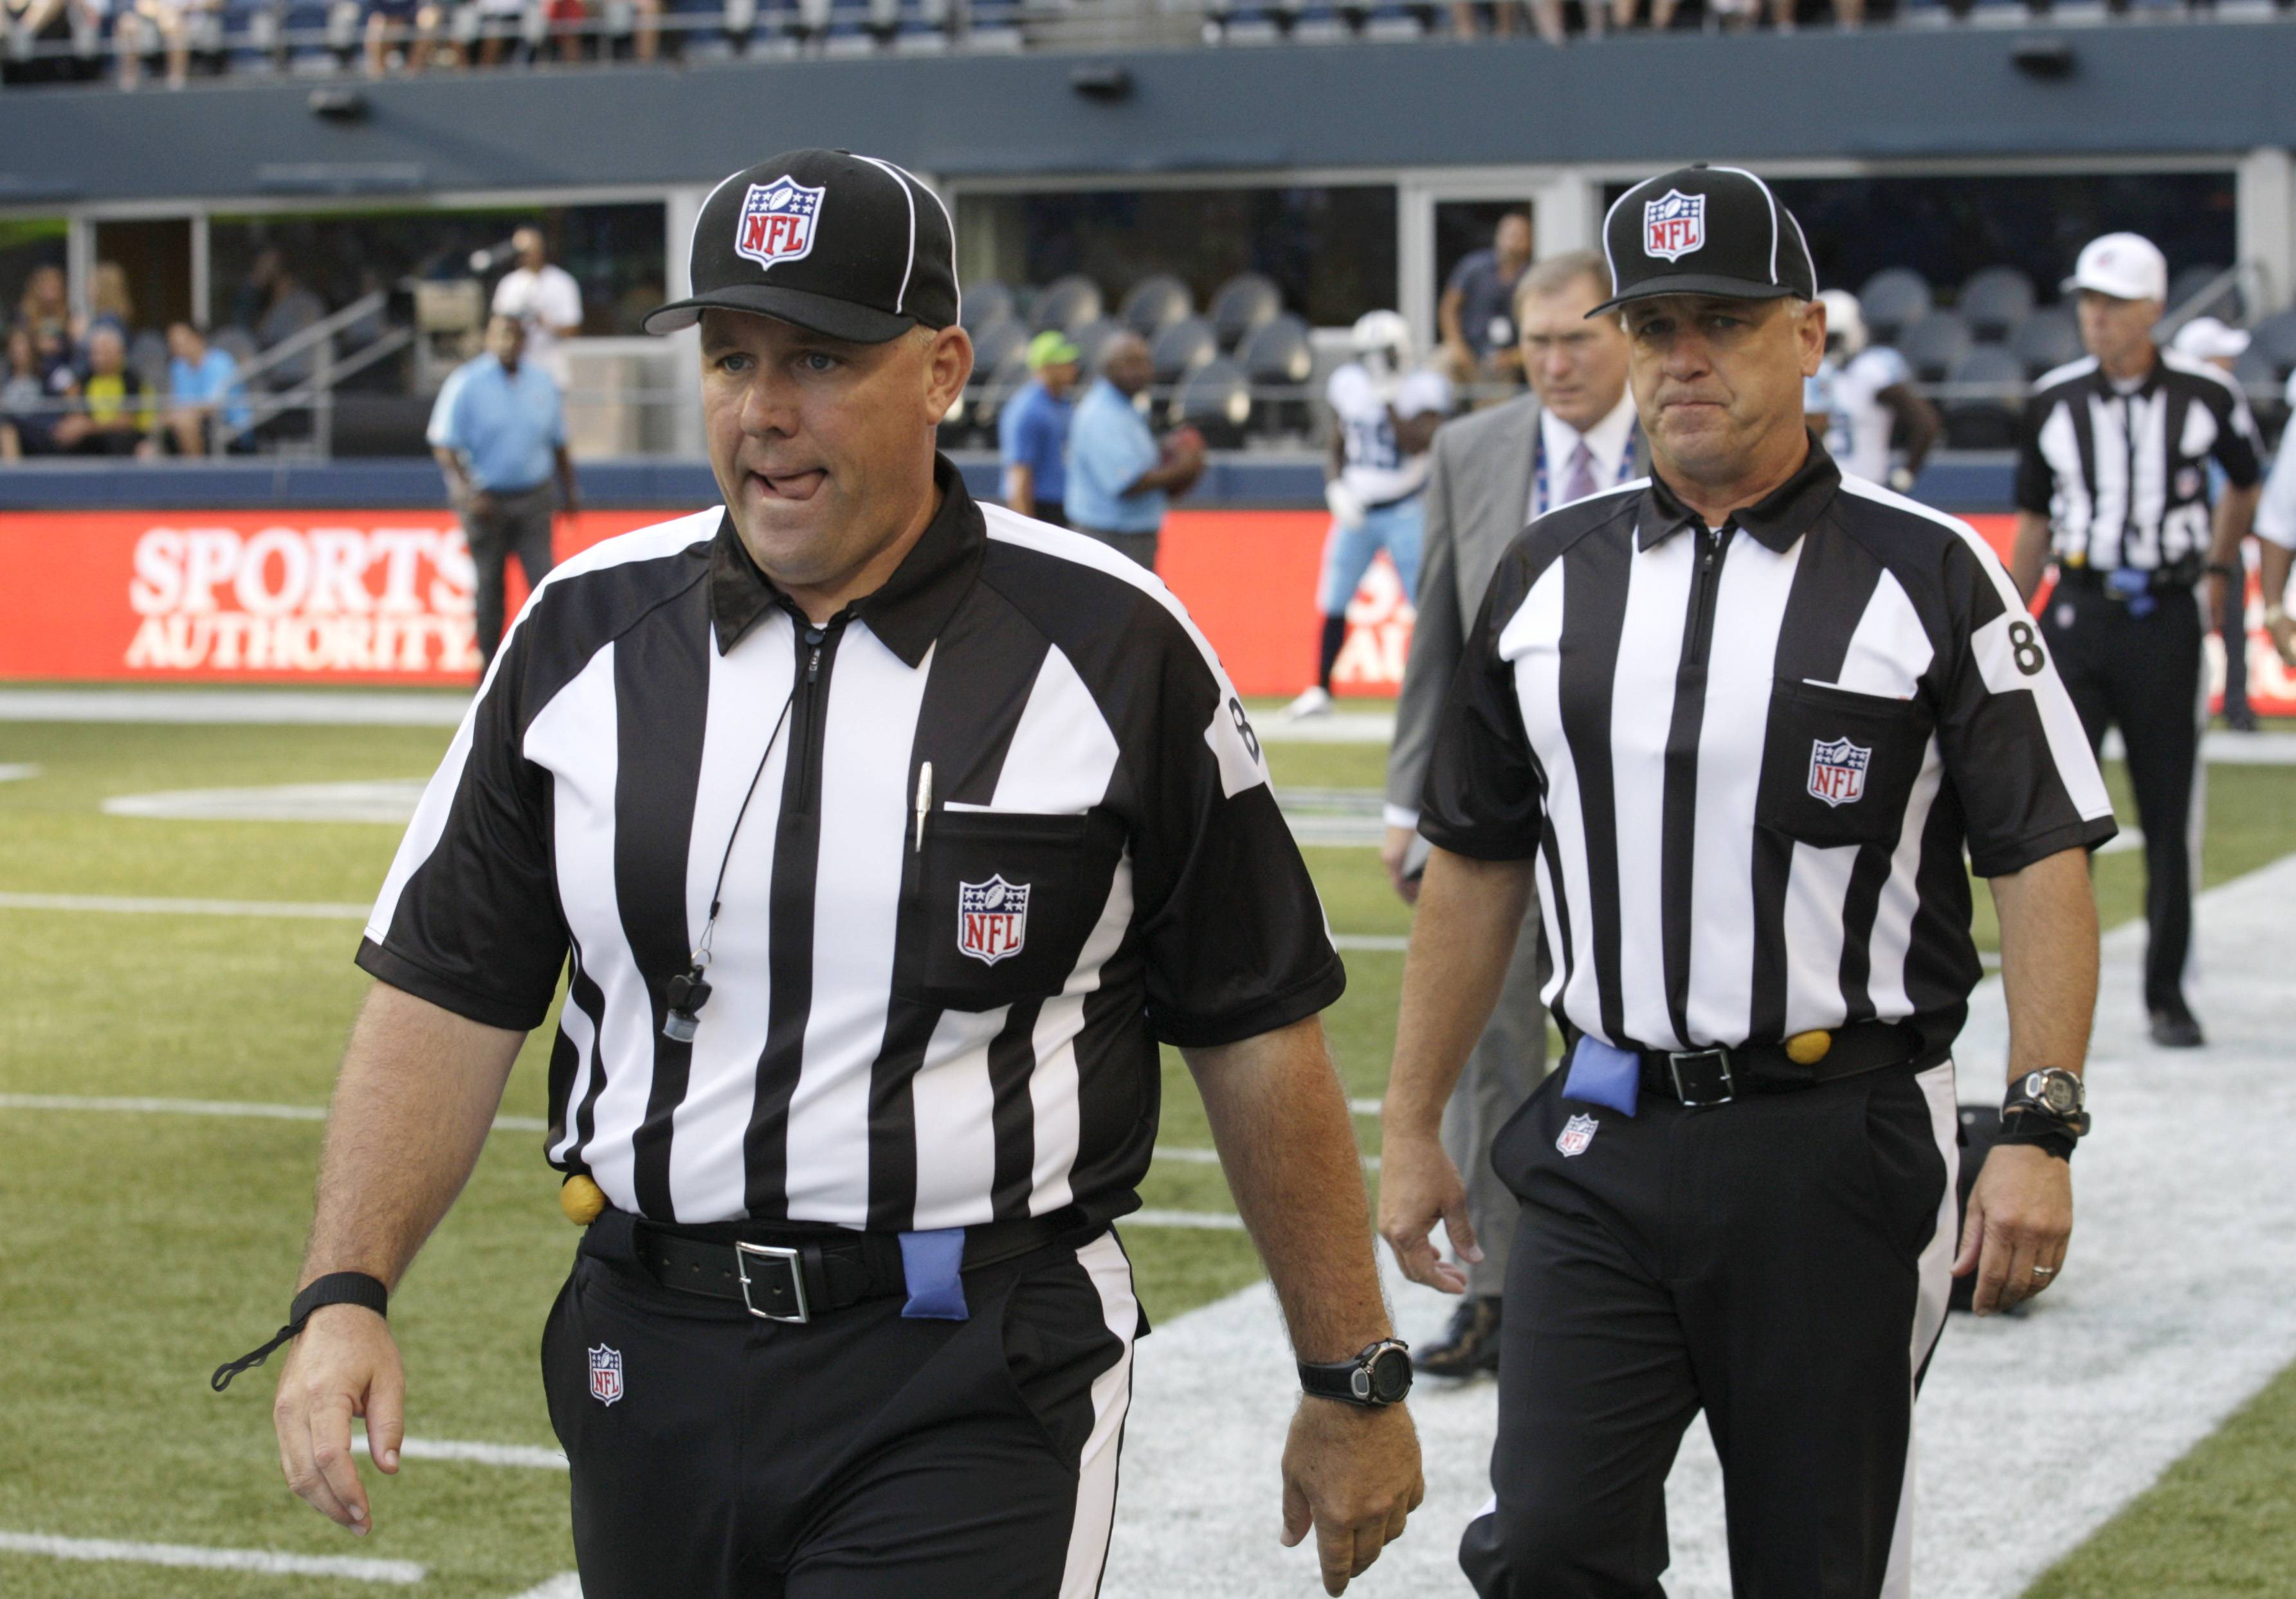 Replacement officials taking the field at the start of a preseason game between the Seattle Seahawks and the Tennessee Titans, in Seattle. The NFL will open the regular season with replacement officials. League executive Ray Anderson has told the 32 teams that with negotiations remaining at a standstill between the NFL and the officials' union. The replacements will be on the field beginning next Wednesday night, when the Cowboys visit the Giants to open the season.